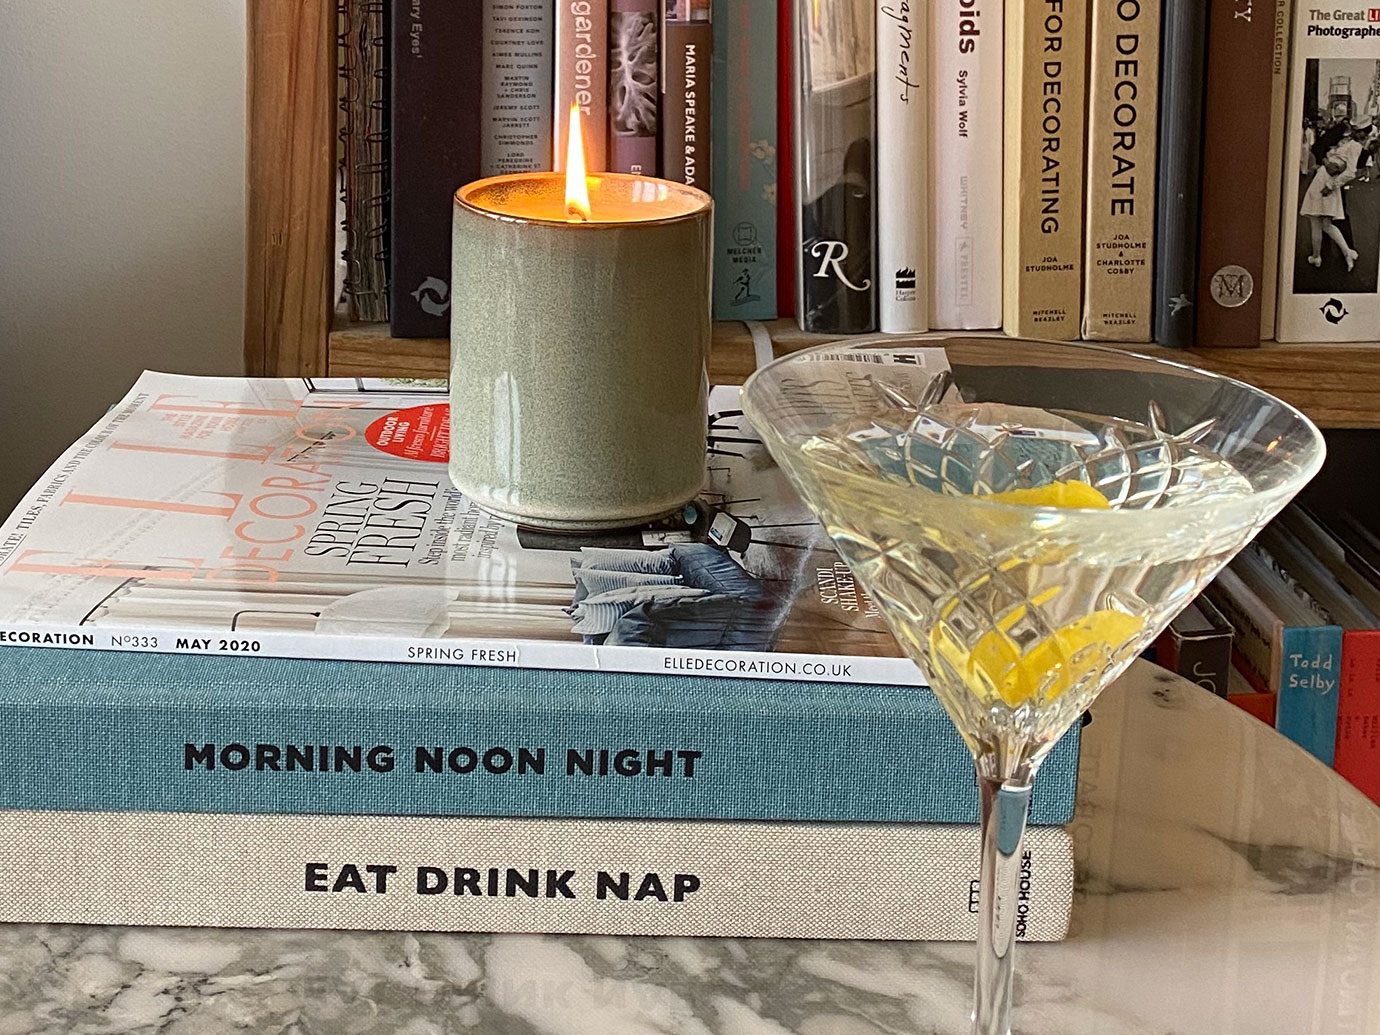 Two books on a table next to a cocktail and a lit candle.